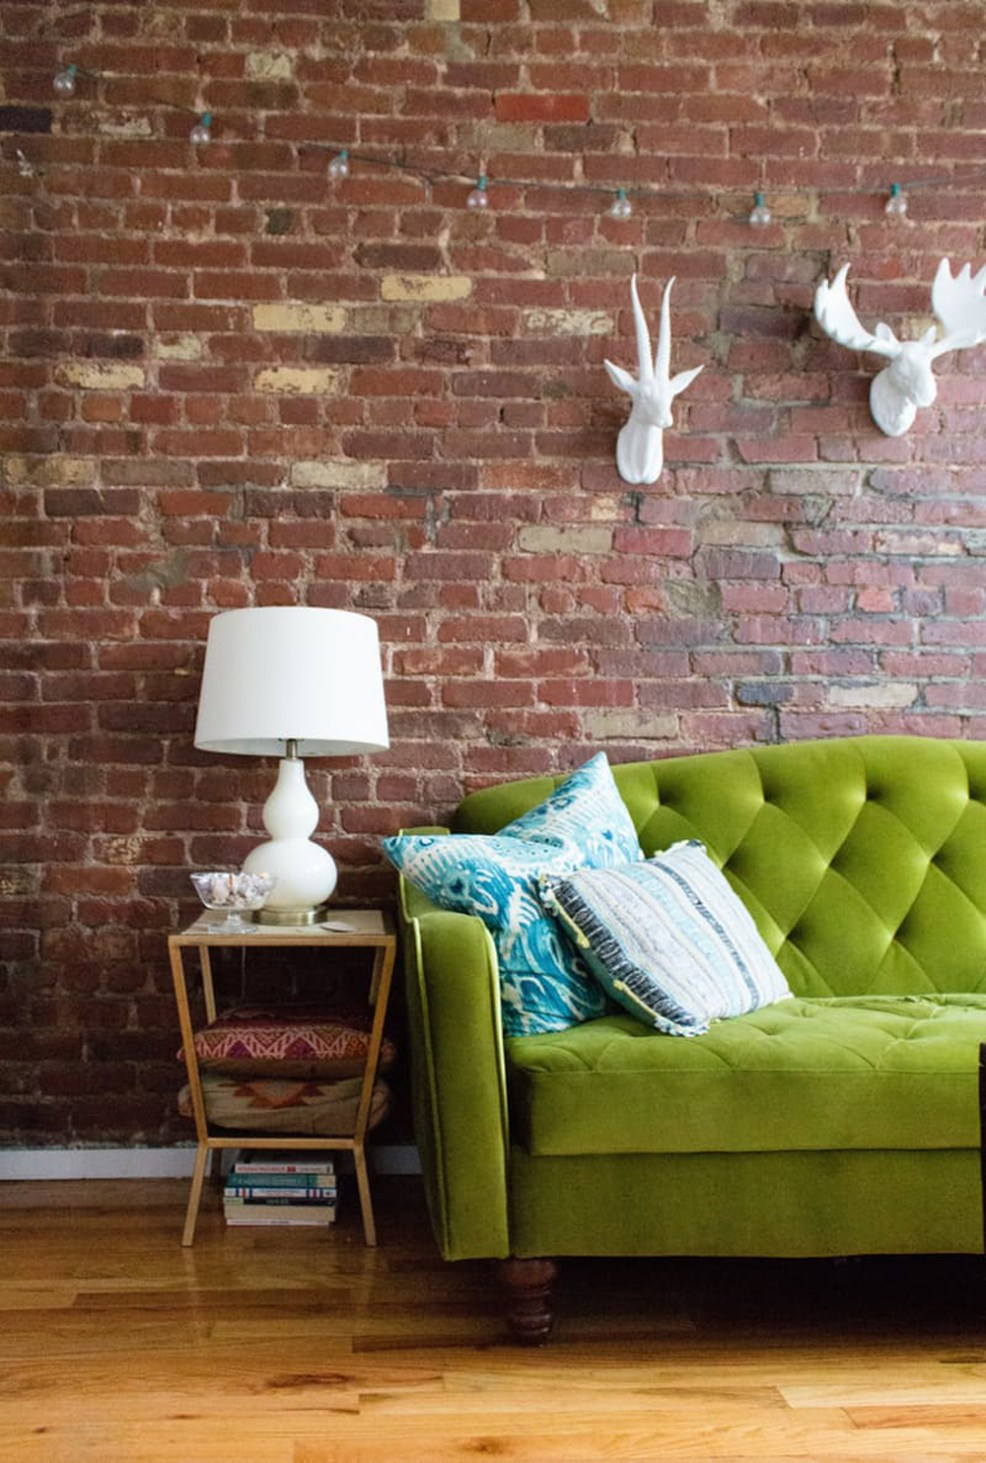 green-couch_edited-1